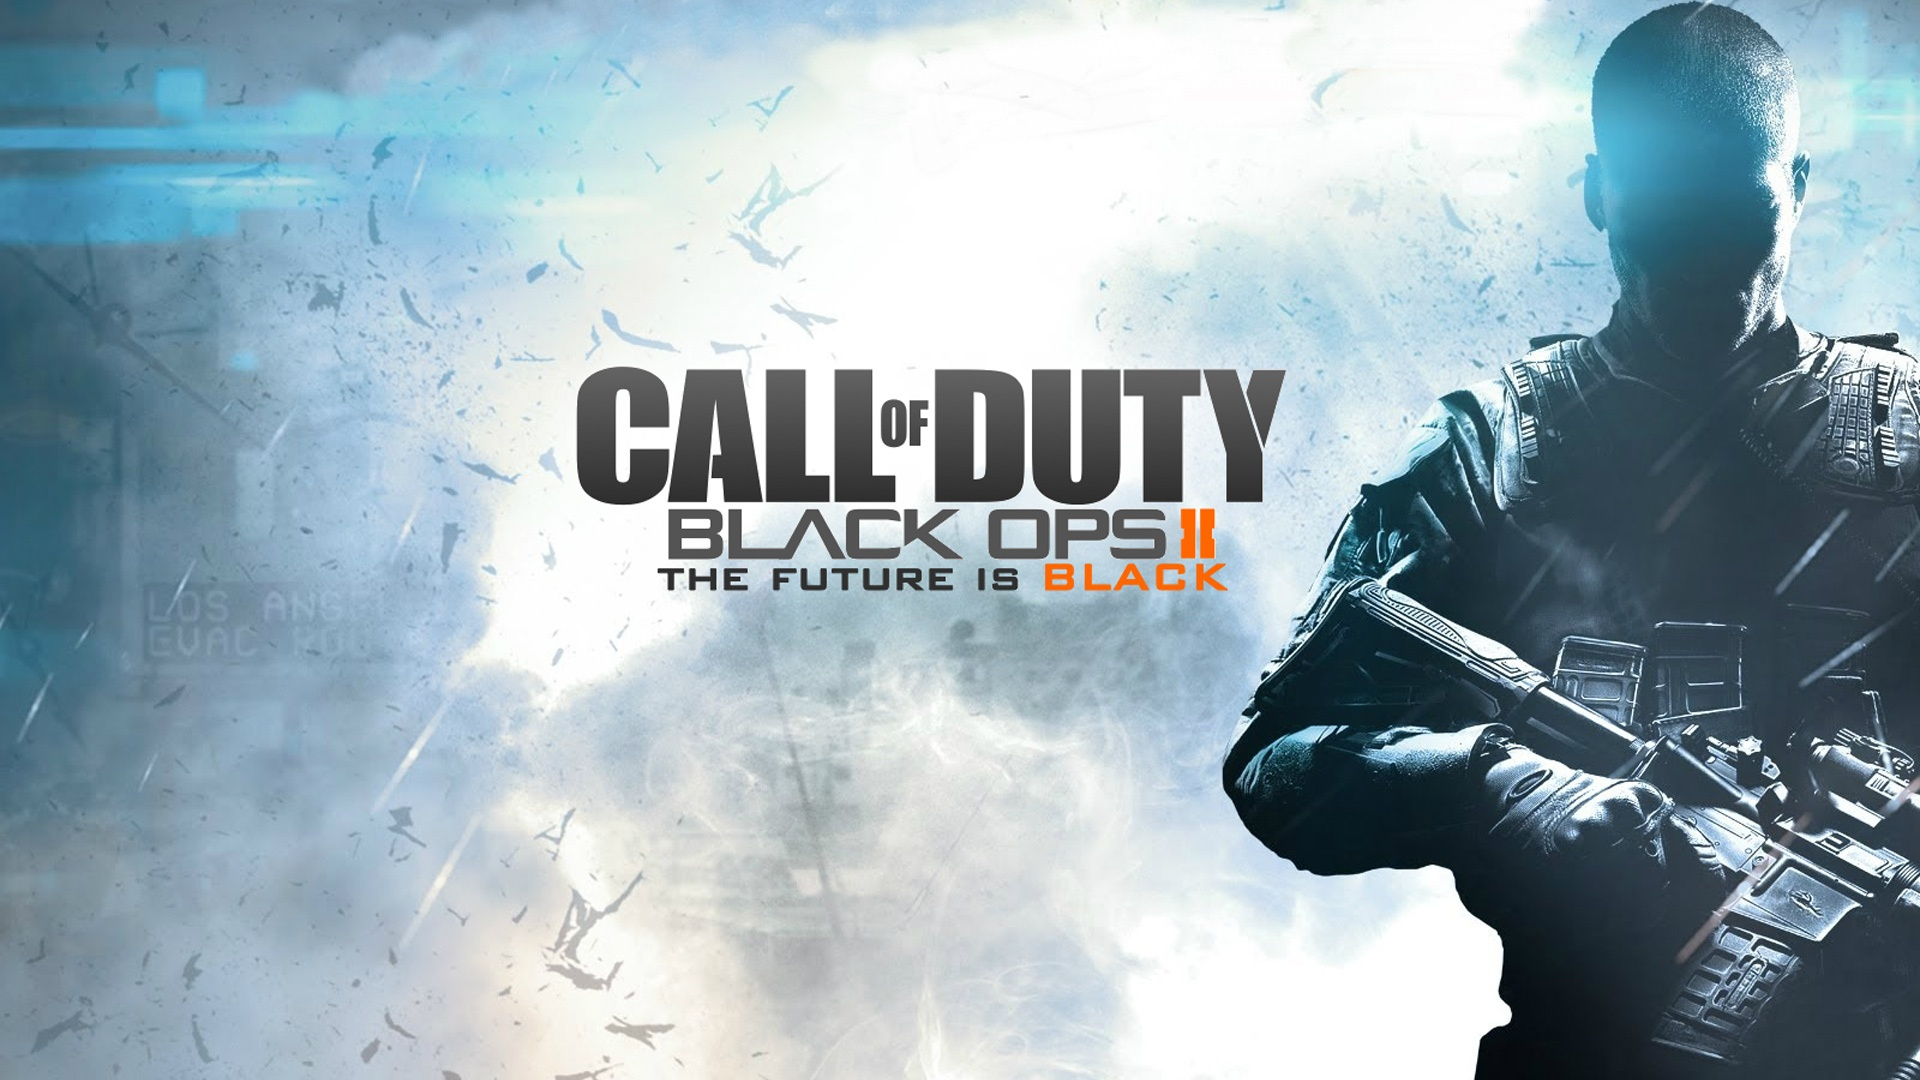 2013 Call Of Duty Black Ops 2 Wallpapers In Jpg Format For Free